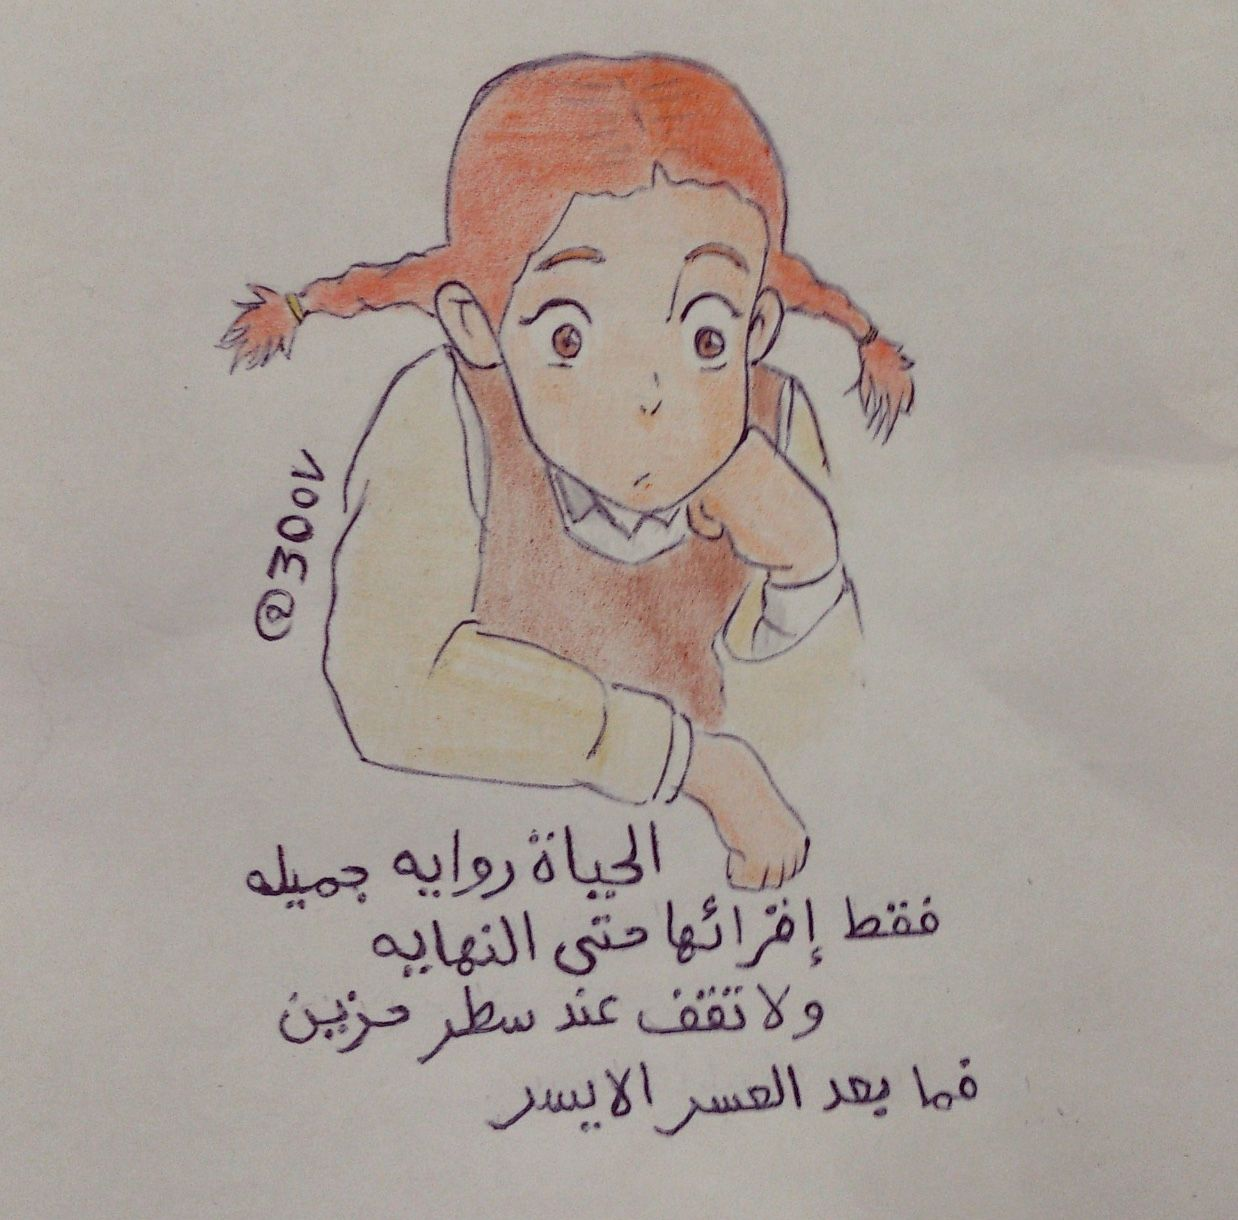 صور كلمات رسوم متحركة رسم Graffiti Cartoons Drawing Quotes Animated Drawings